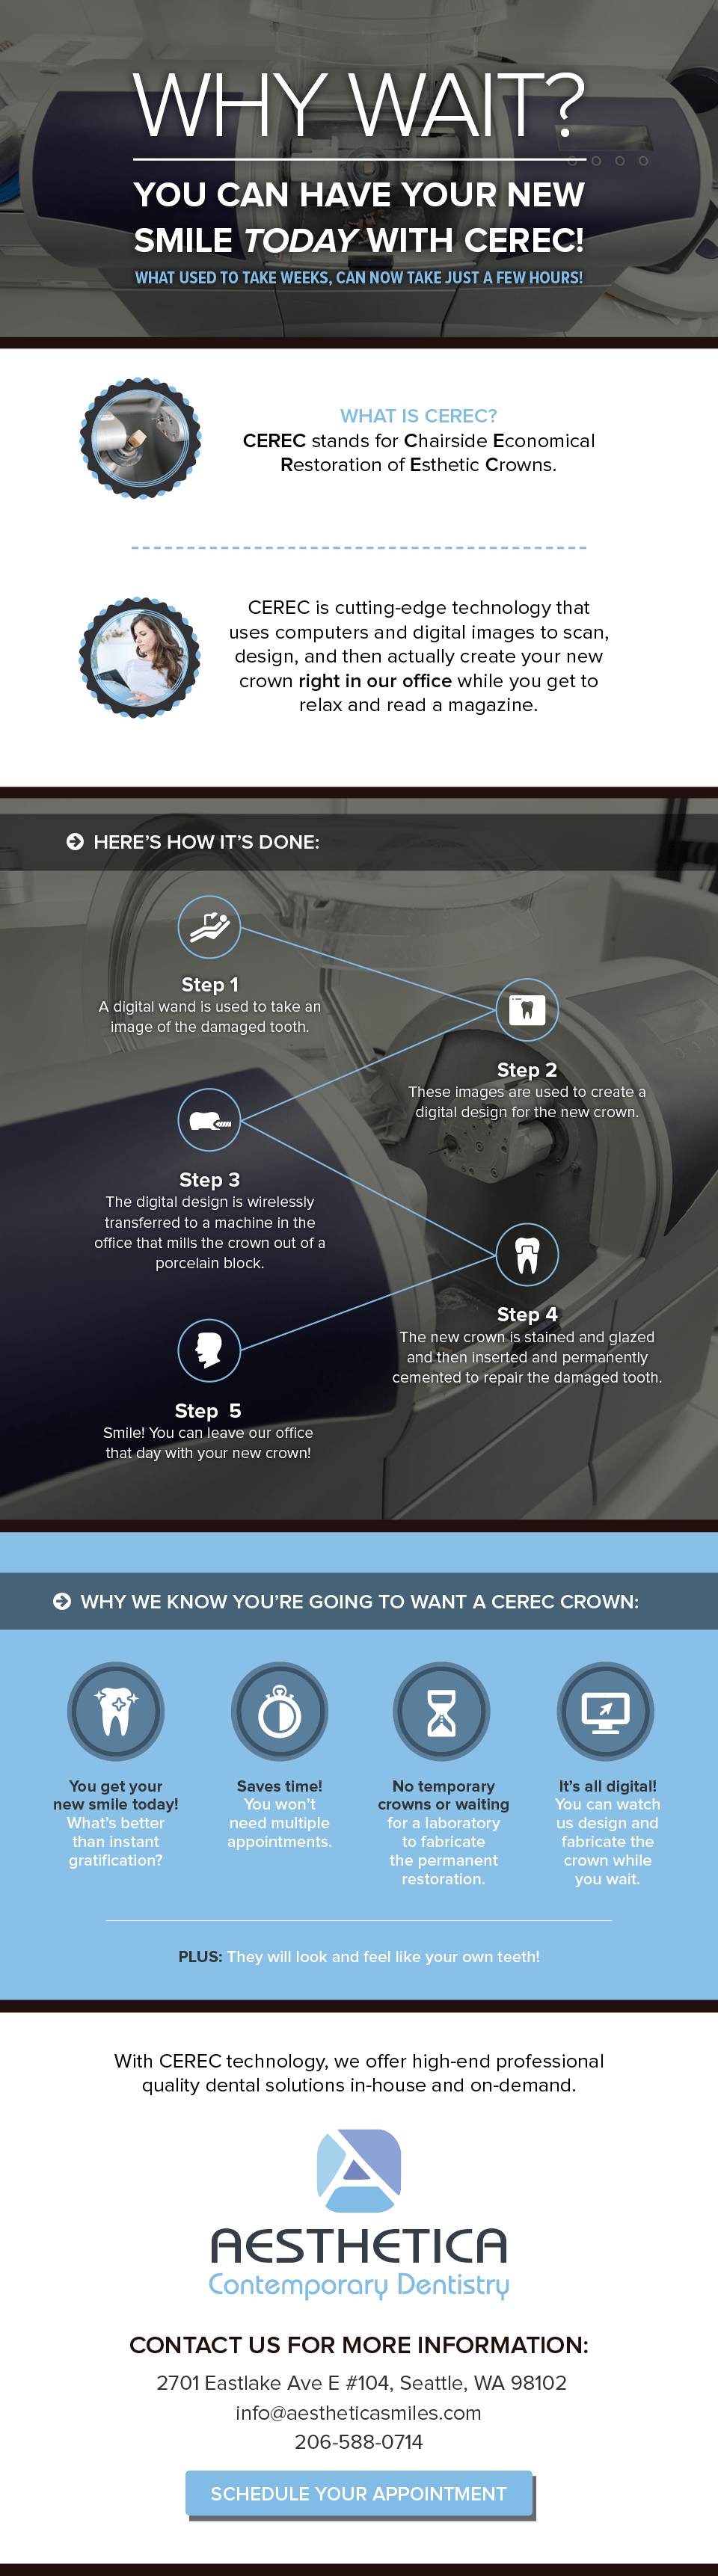 View our educational infographic about CEREC same-day dental crowns